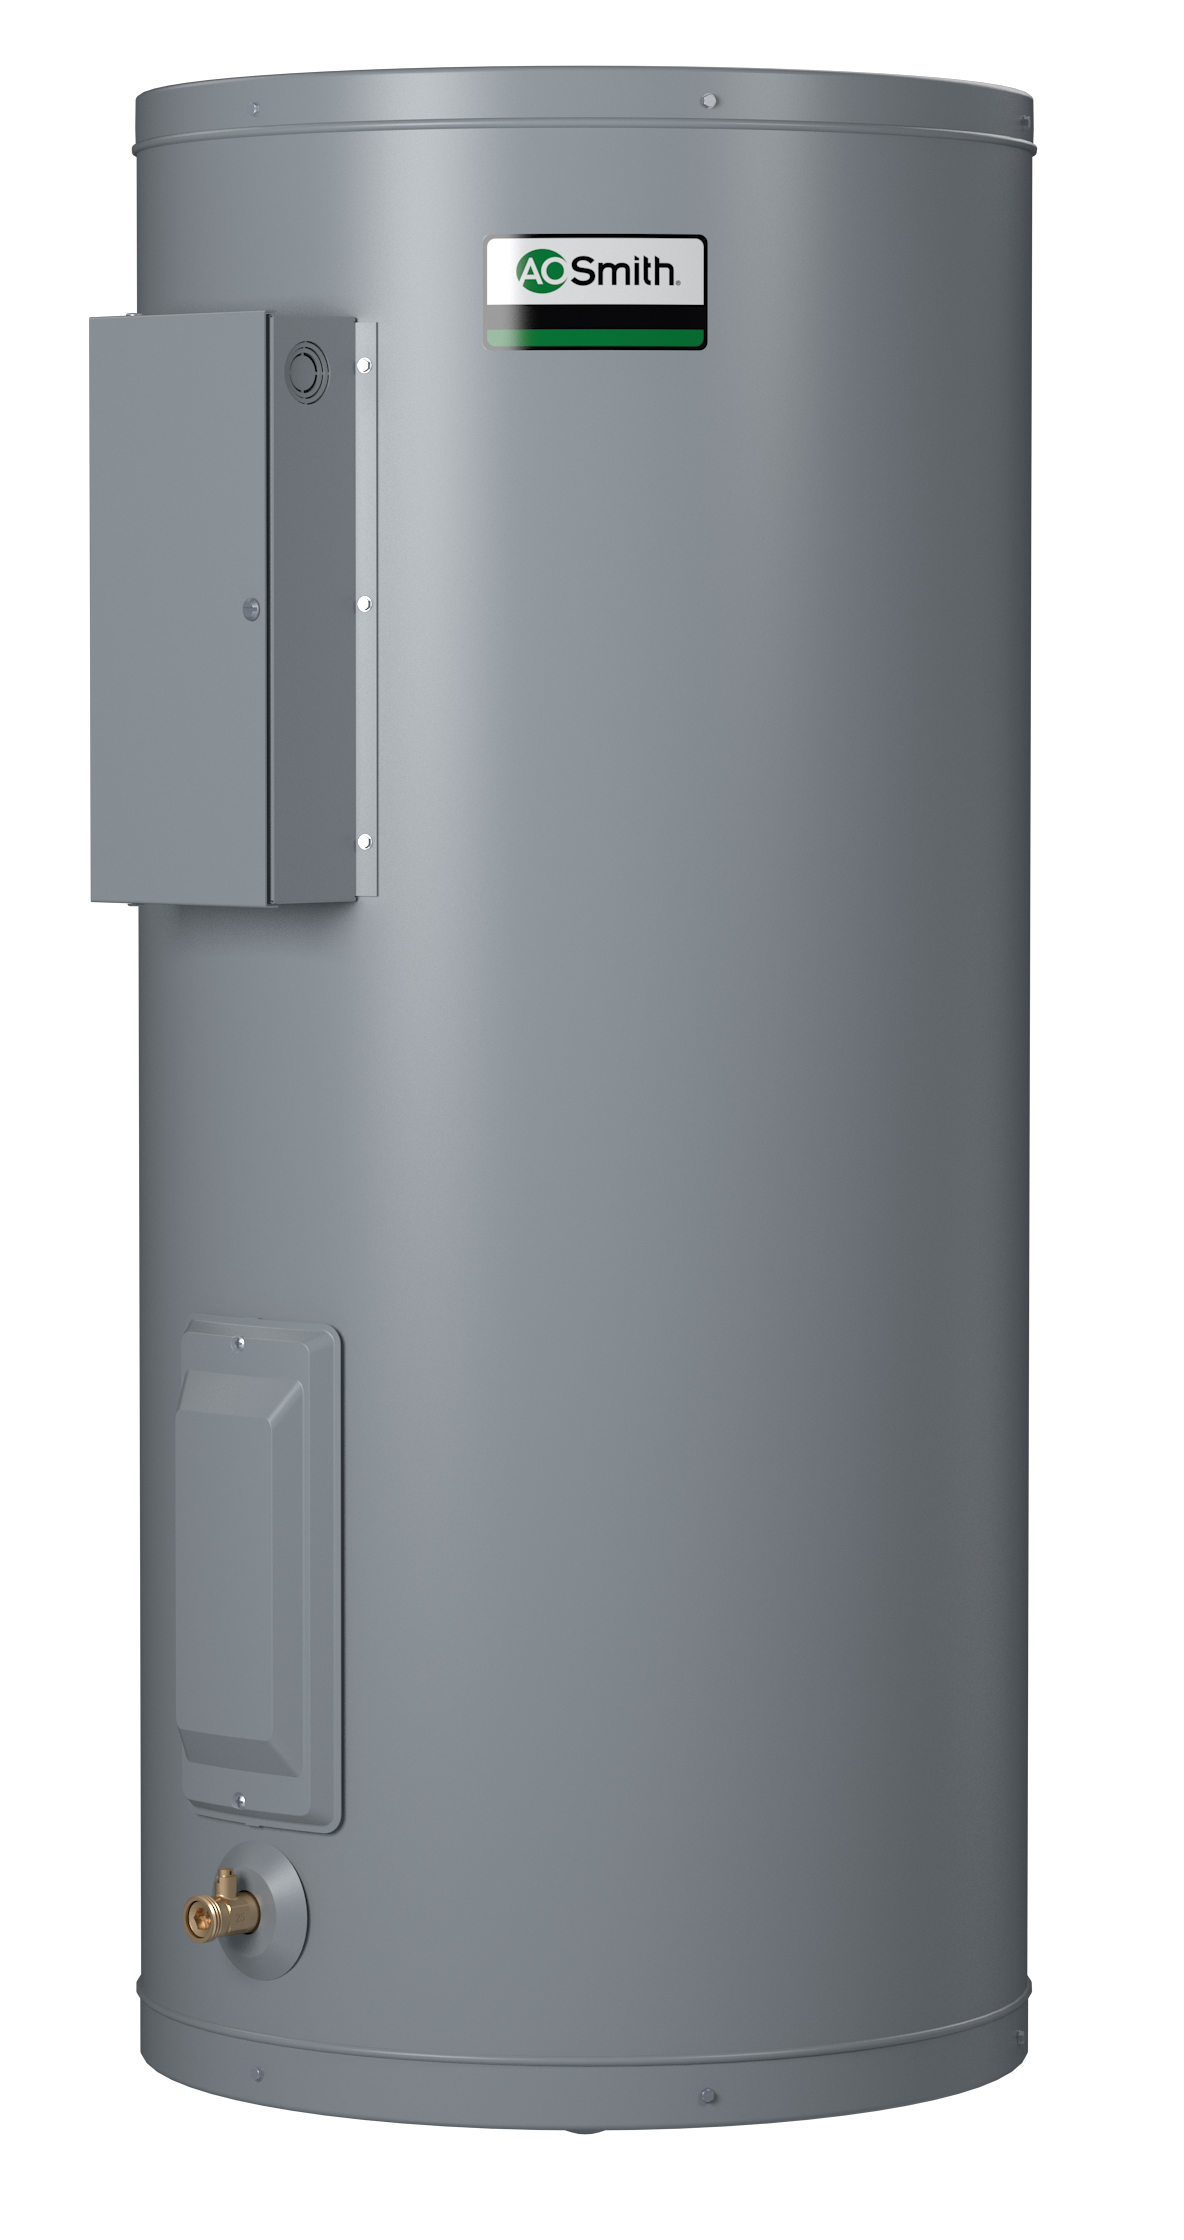 AO SMITH DEN-120D: 119 GALLONS, 1.5KW, 120 VOLTAGE, 1 PHASE, (2-1500 WATT ELEMENTS, NON-SIMULTANEOUS WIRING), DURA-POWER, NON-ASME COMMERCIAL ELECTRIC WATER HEATER